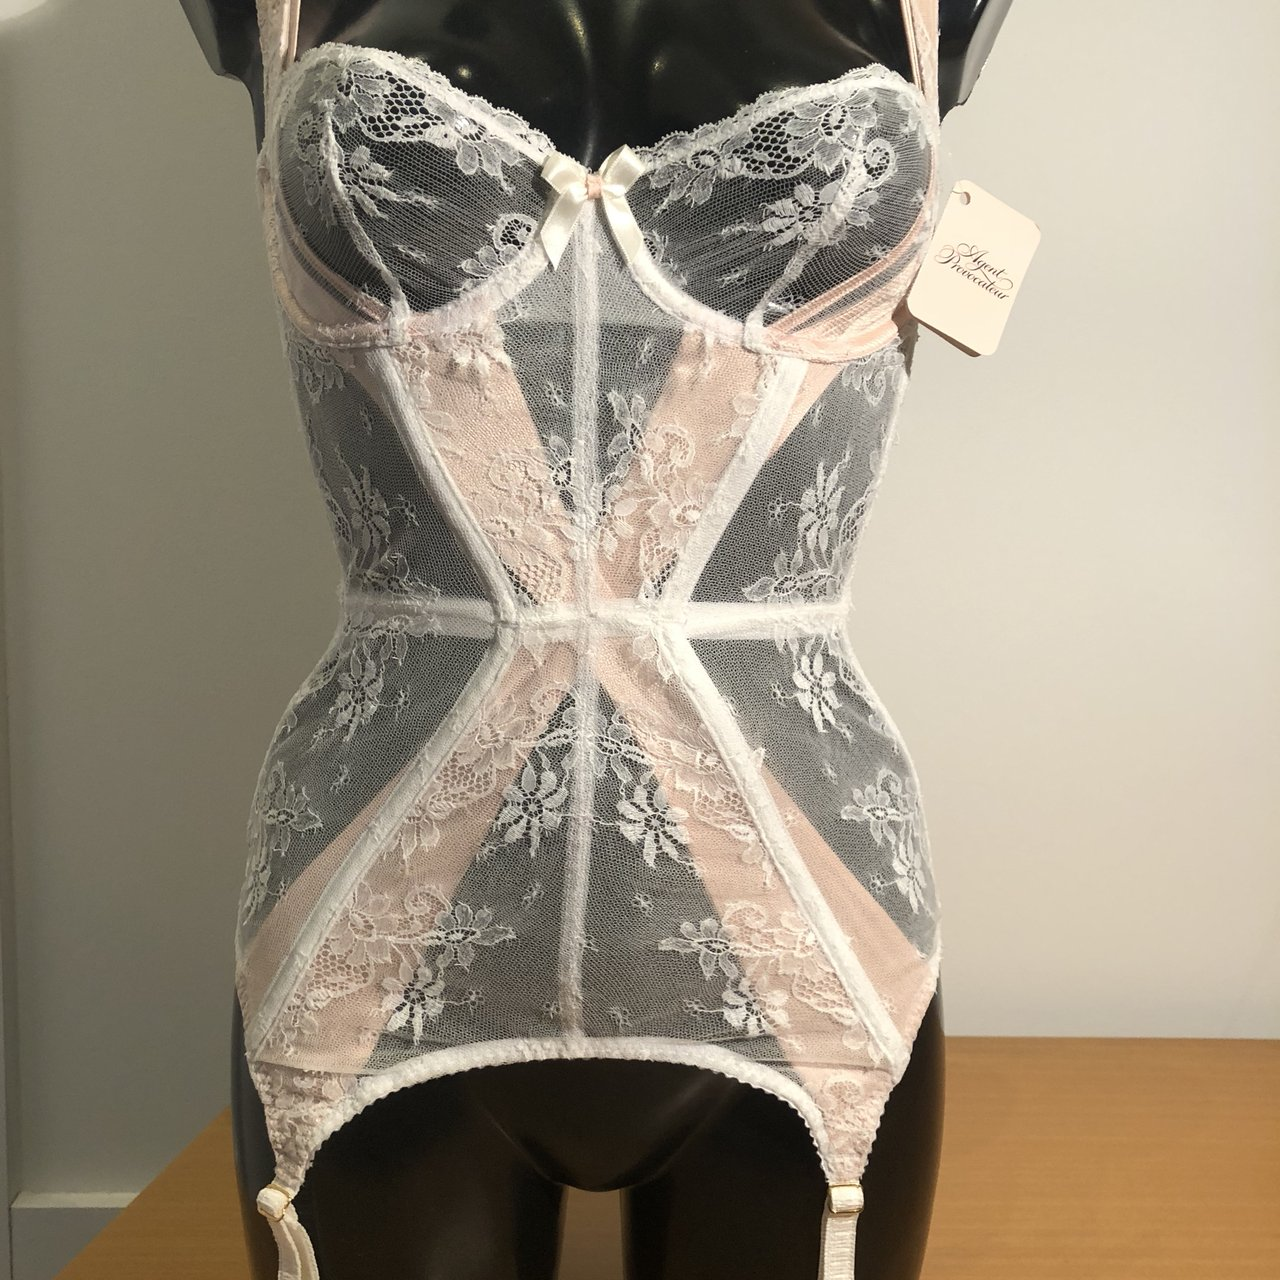 dbcf26a42a2 Agent Provocateur Maddy Basque. White   Pink. New. Amazing - Depop